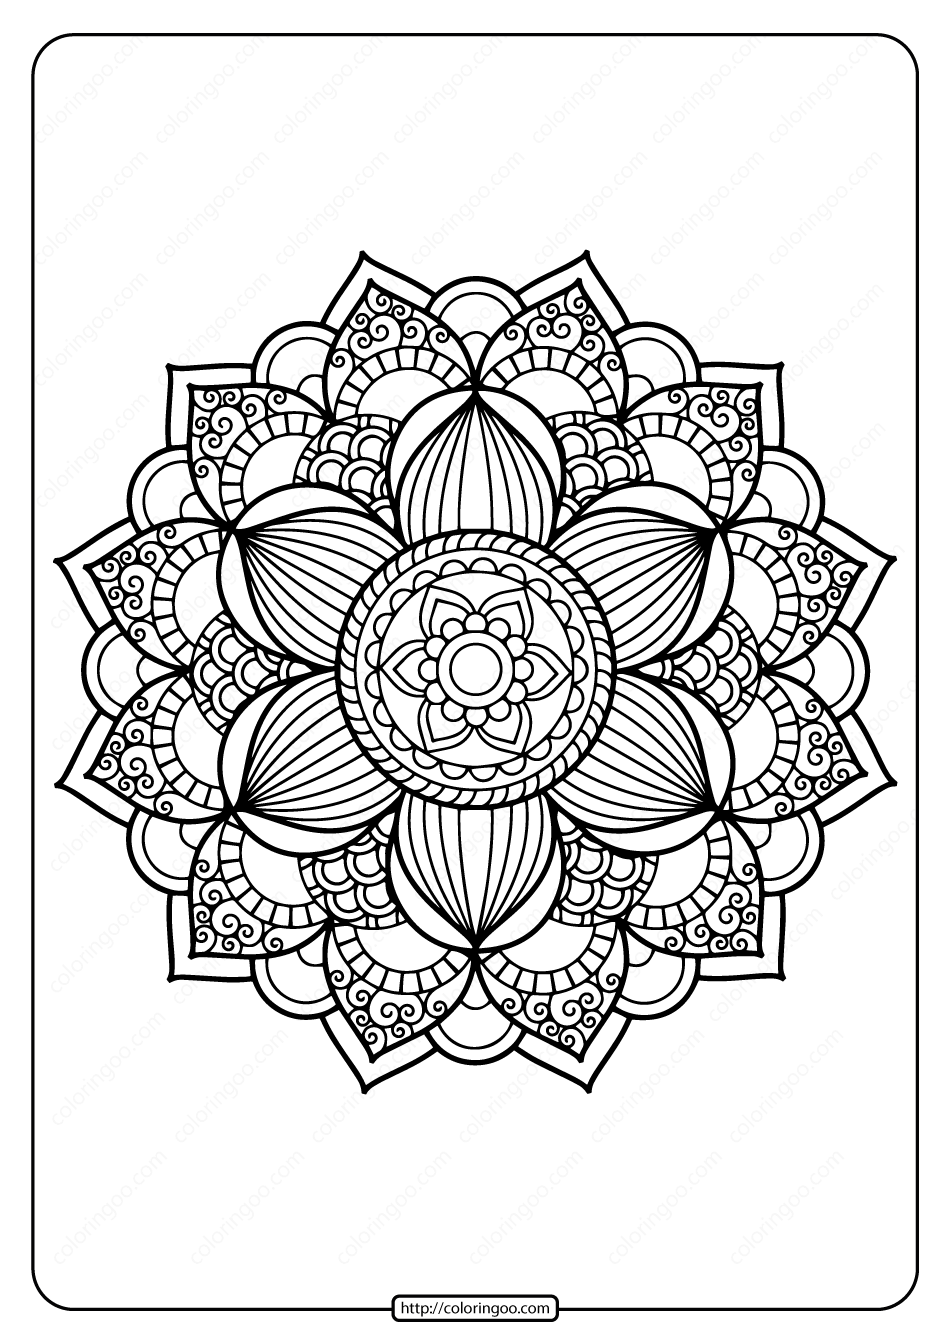 Printable PDF Coloring Book Pages for Adults 023